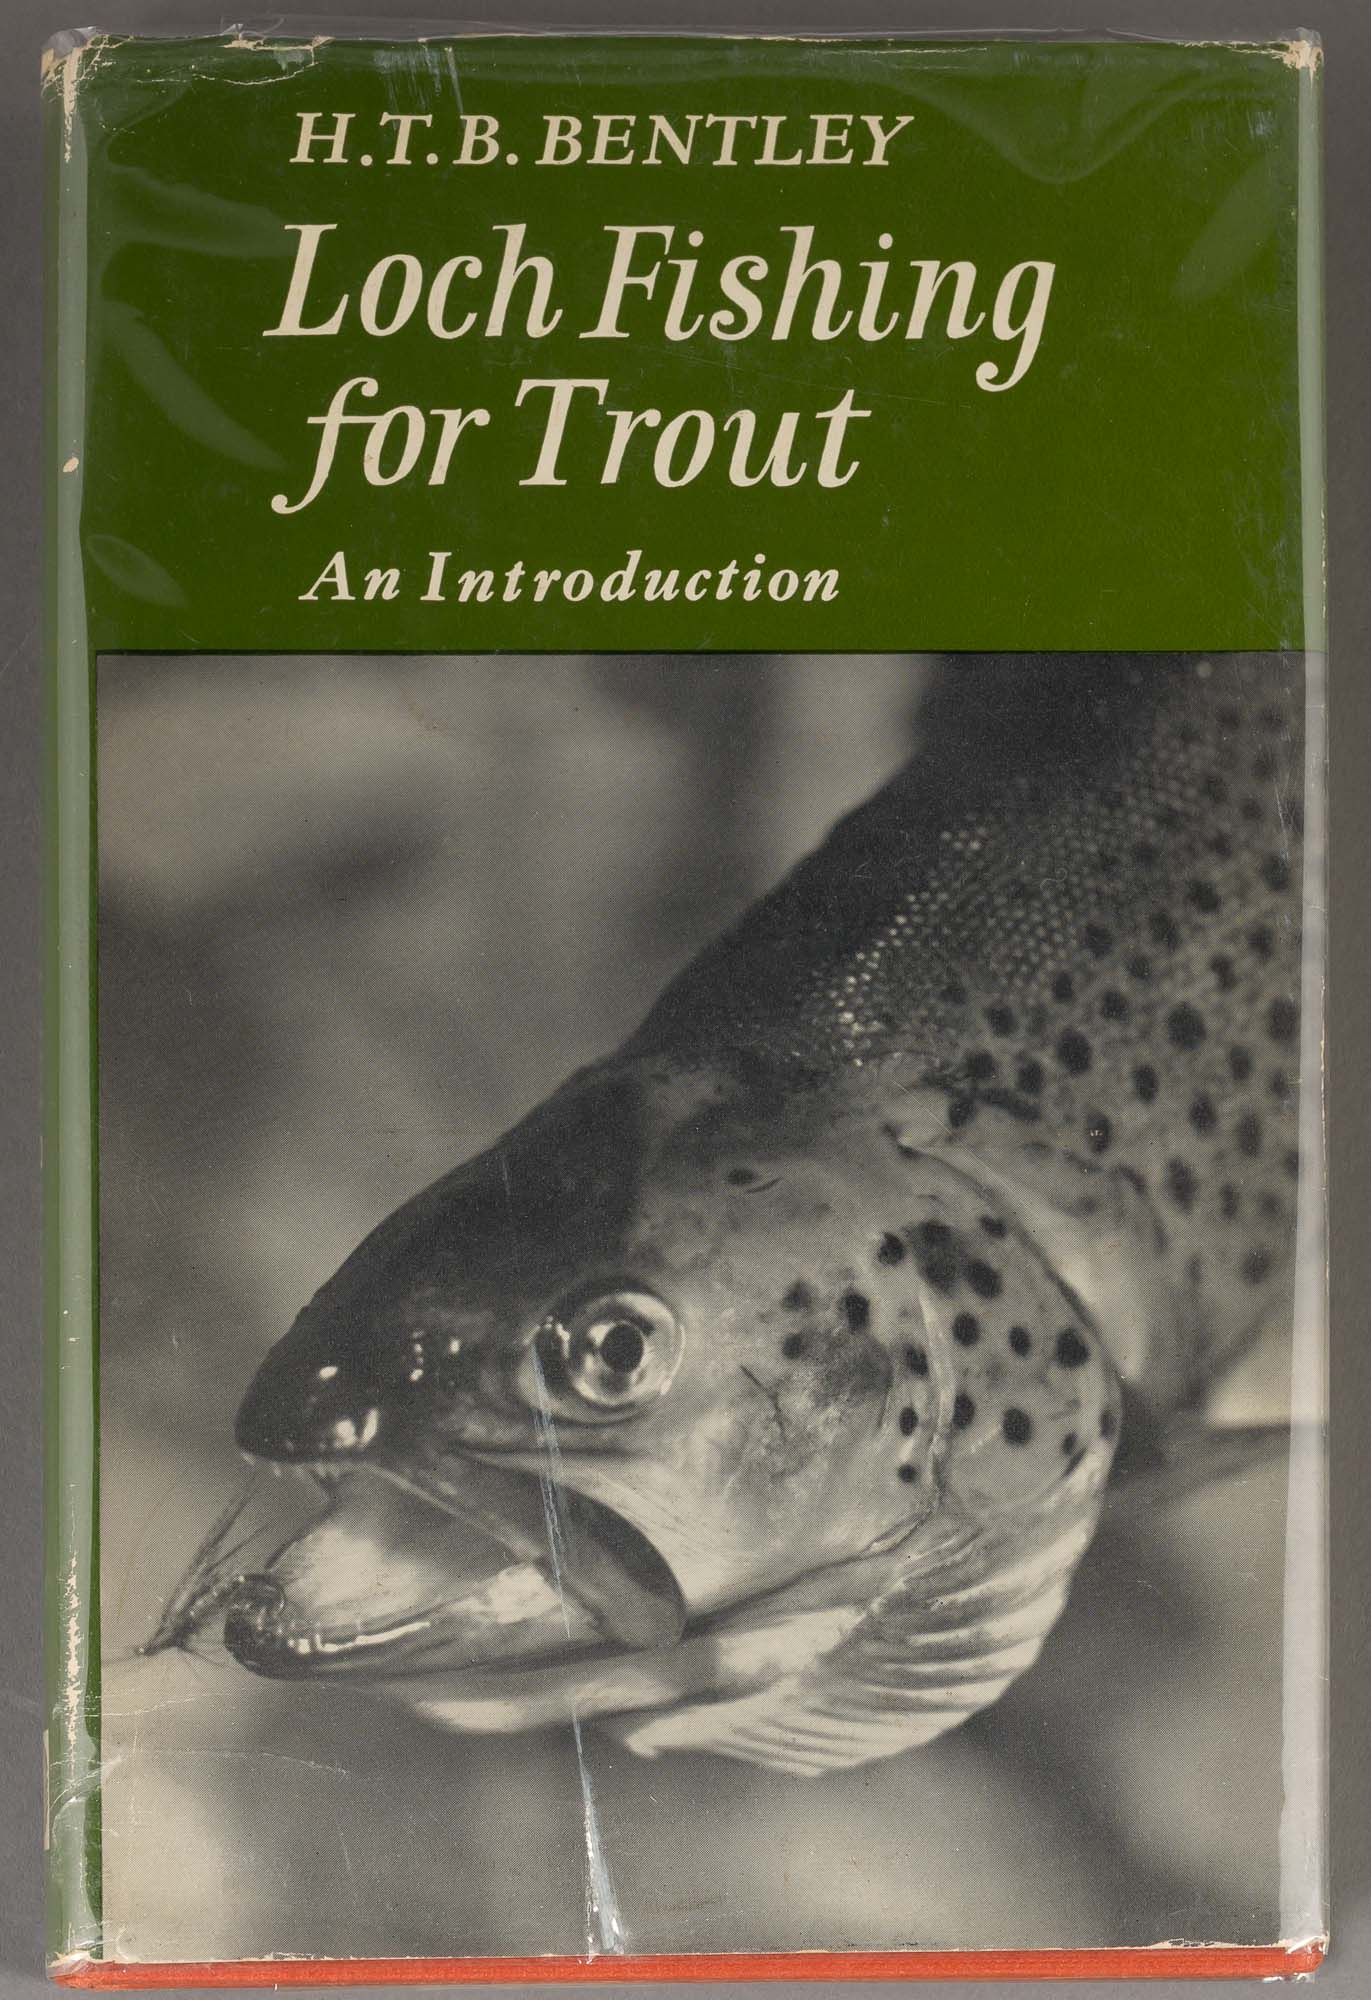 Lot image - BENTLEY, H. T. B.  Loch Fishing For Trout. An Introduction.